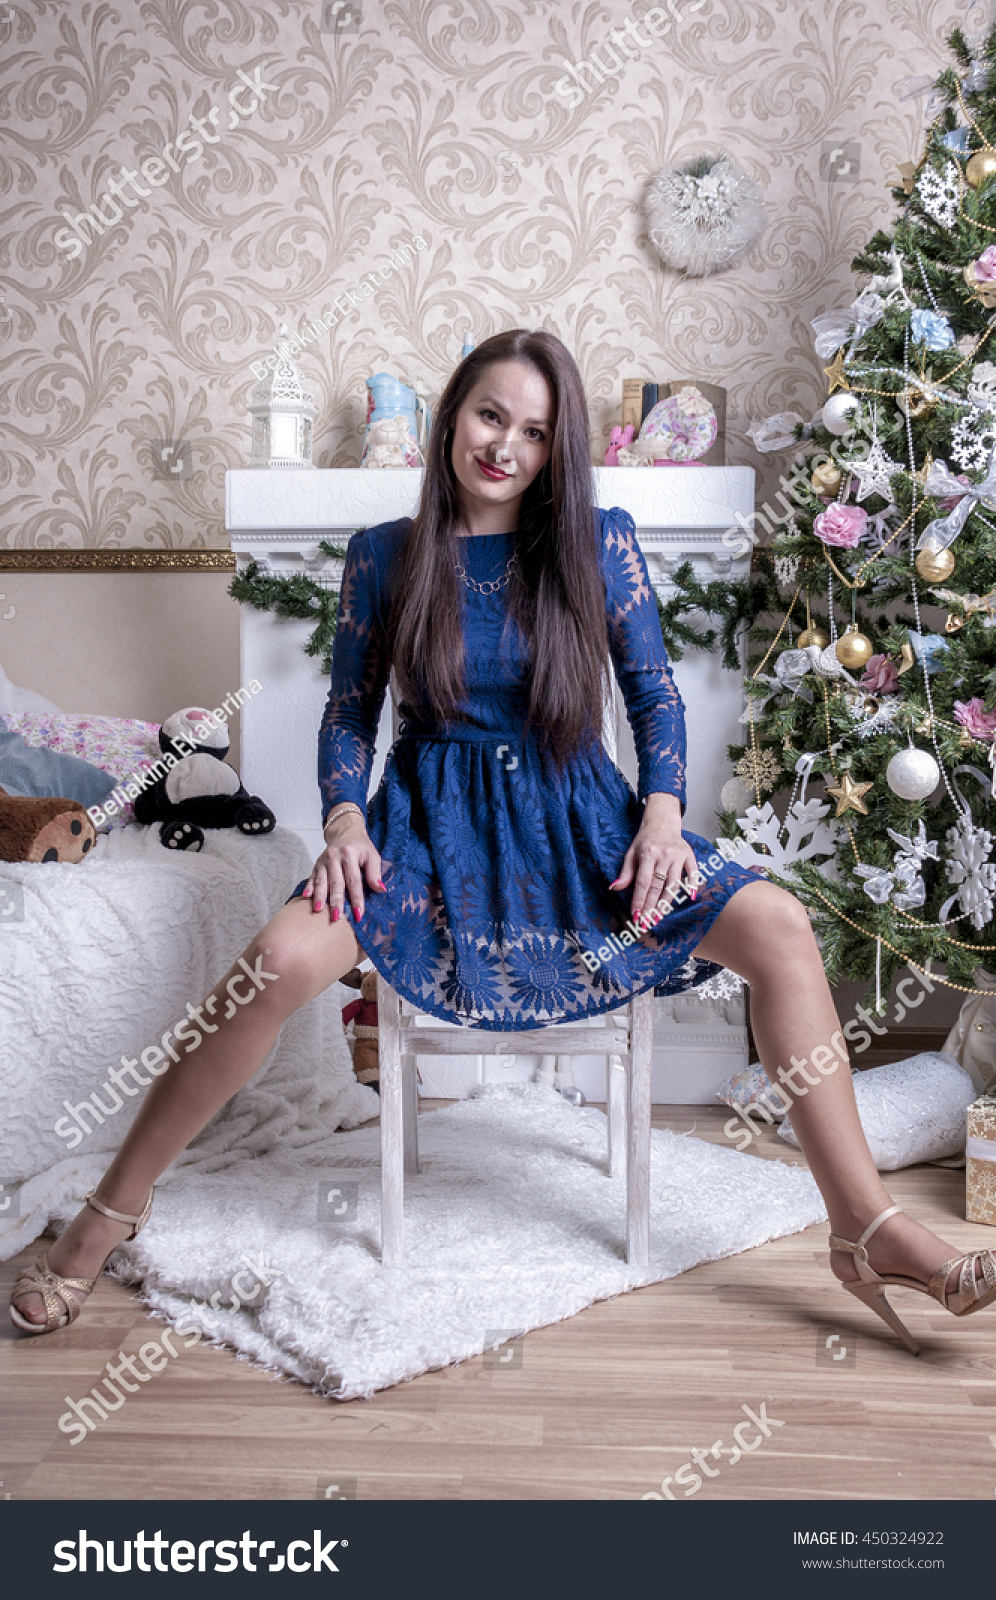 Girl Blue Dress Sitting On Chair Stock Photo (Edit Now